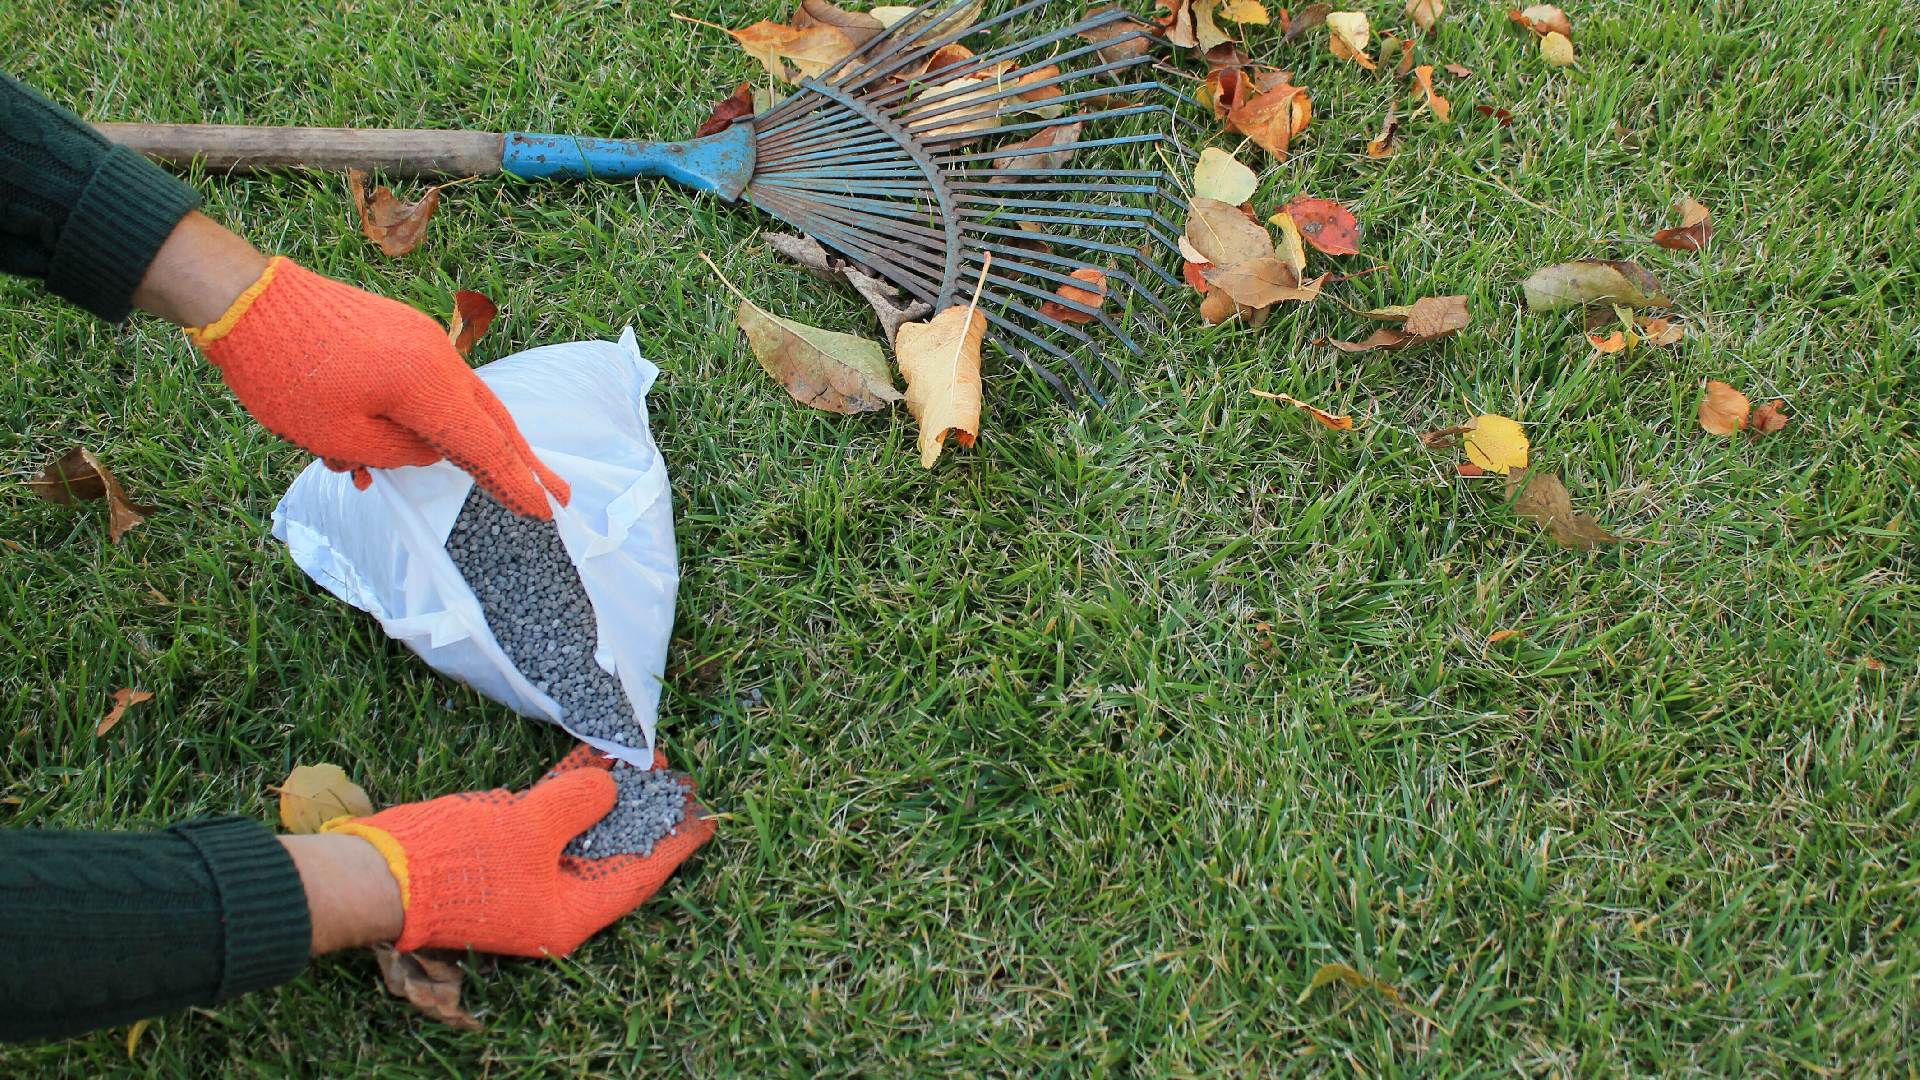 granular fertilizer on green grass beside rake and fall leaves